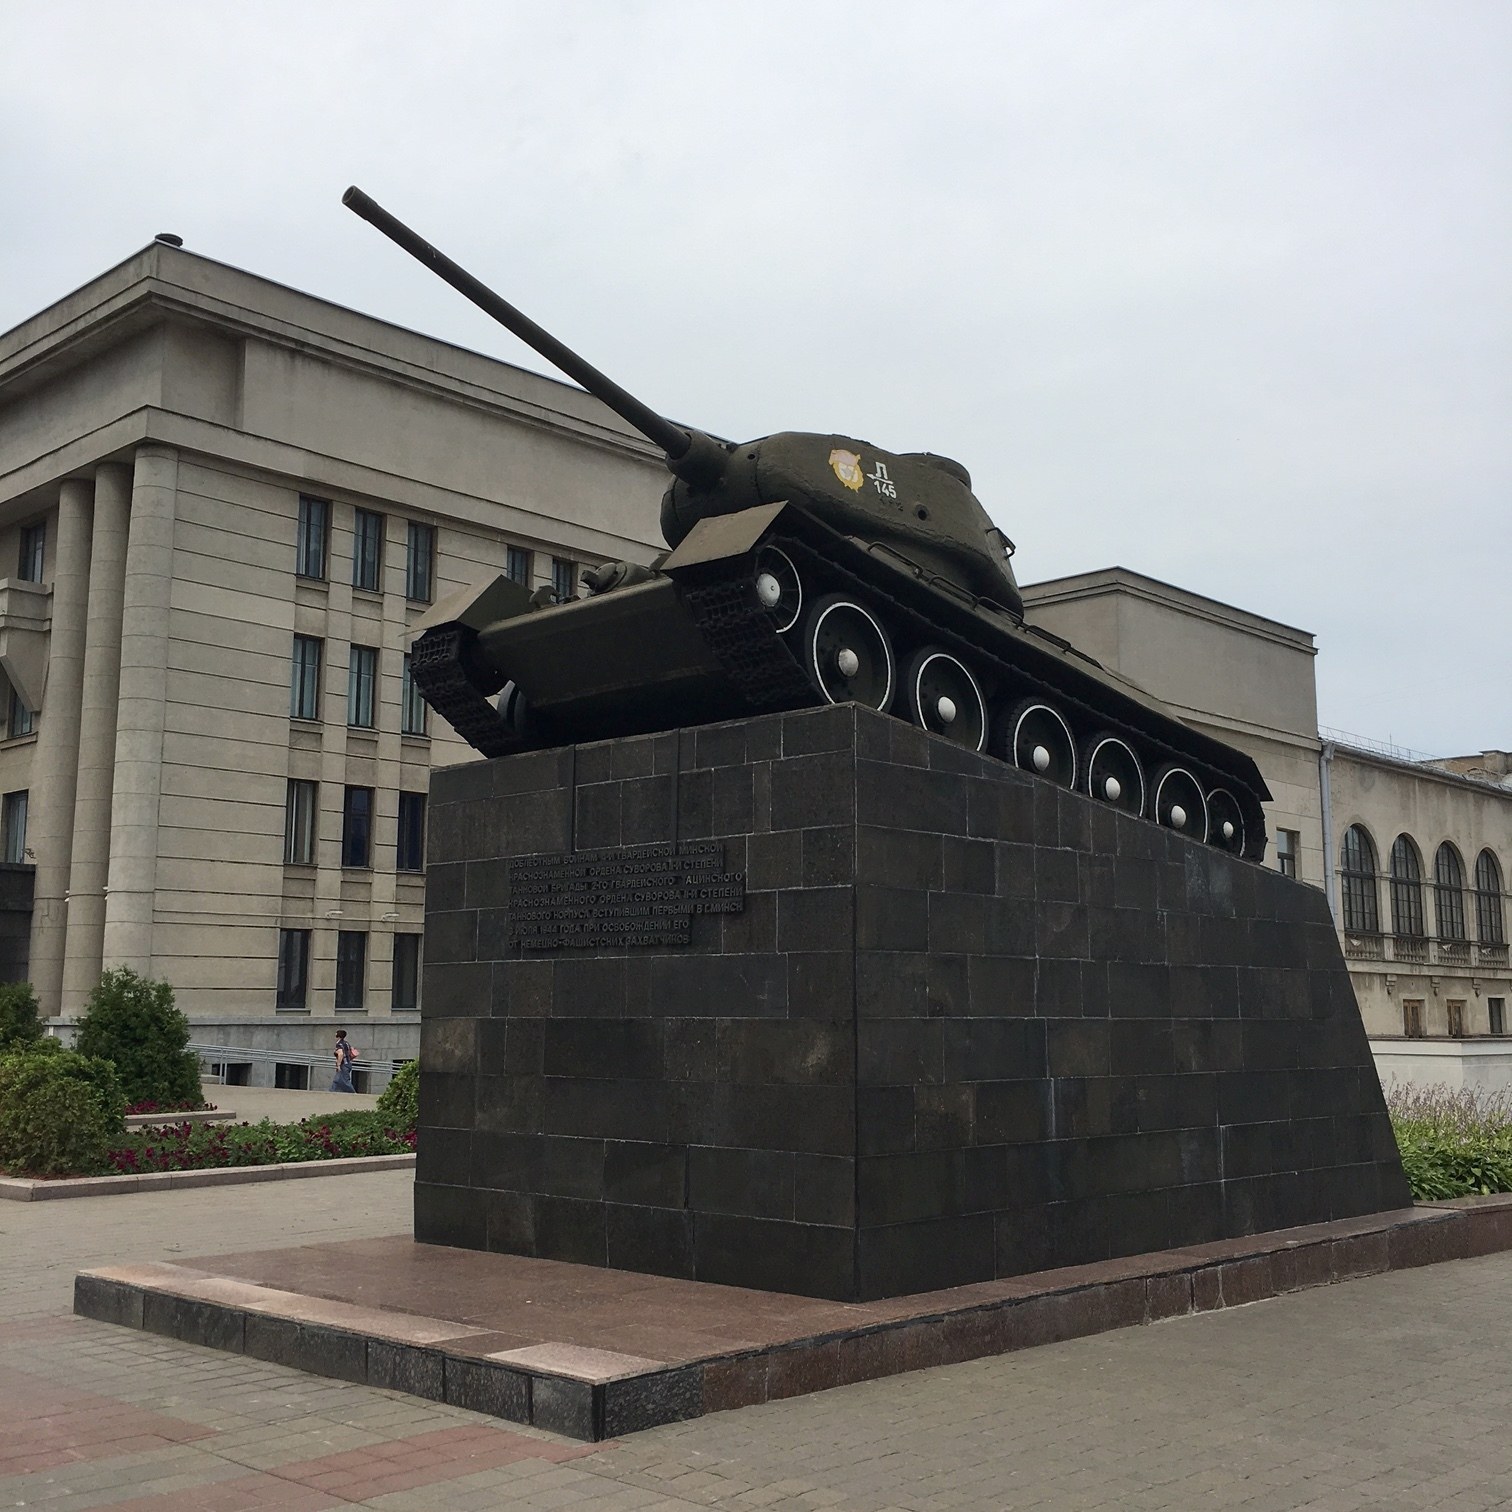 A monument outside a Belarussian Army Office